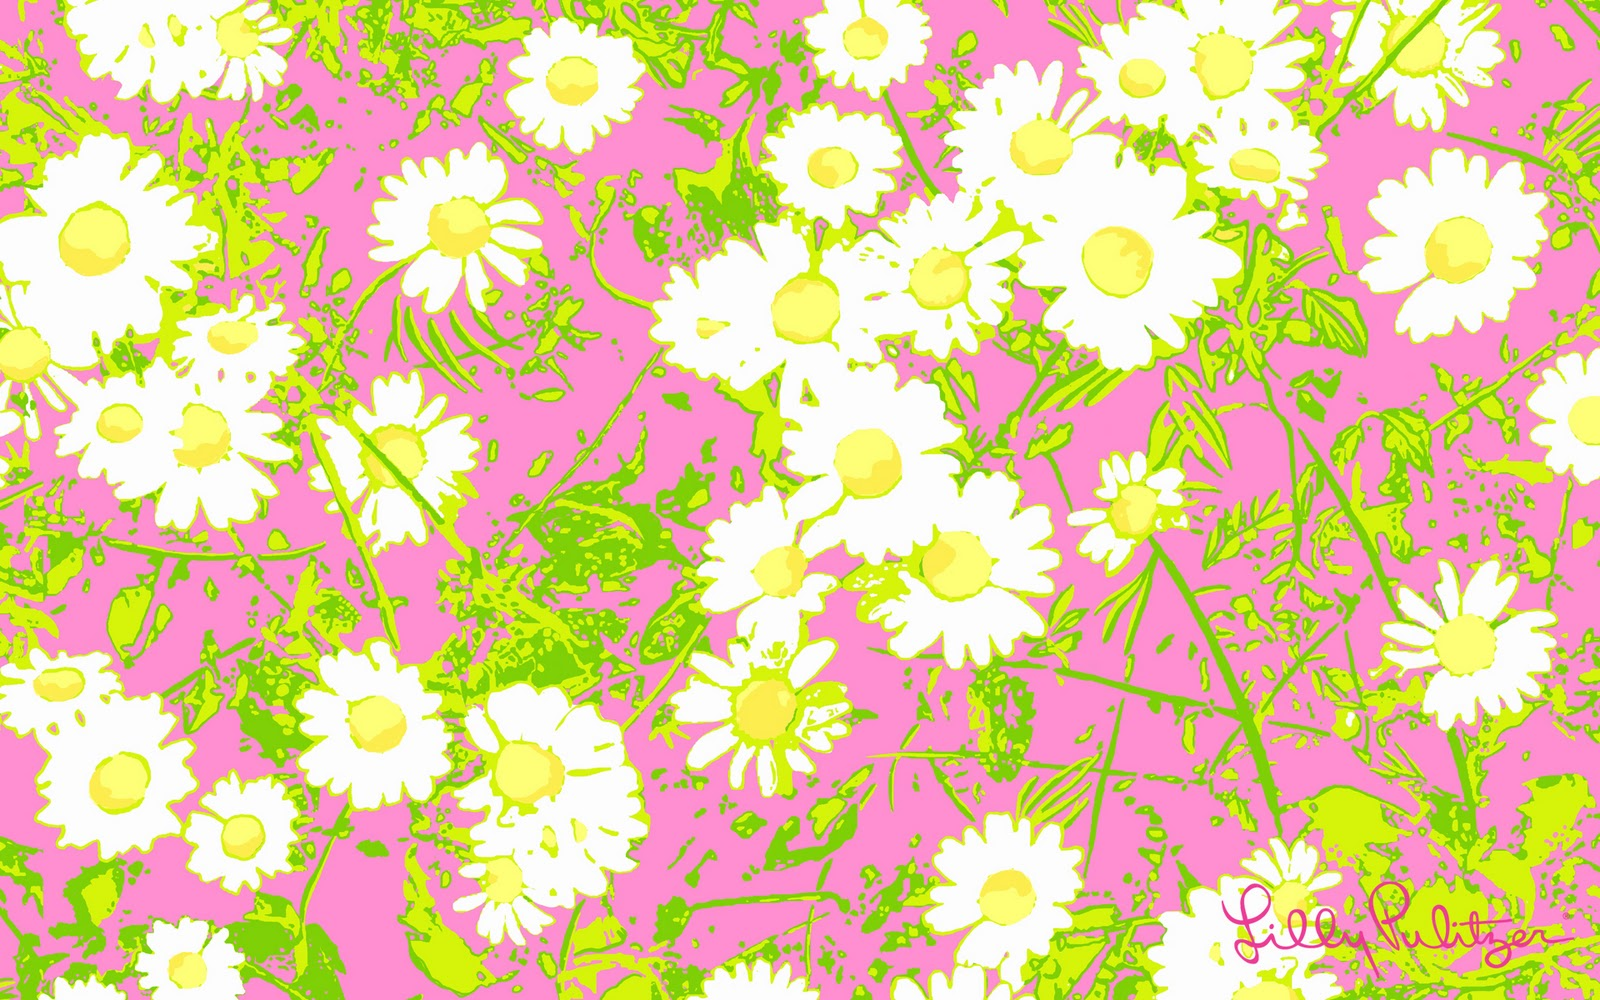 adcdab3dcadebec-pretty-patterns-floral-patterns-wallpaper-wpc5801594